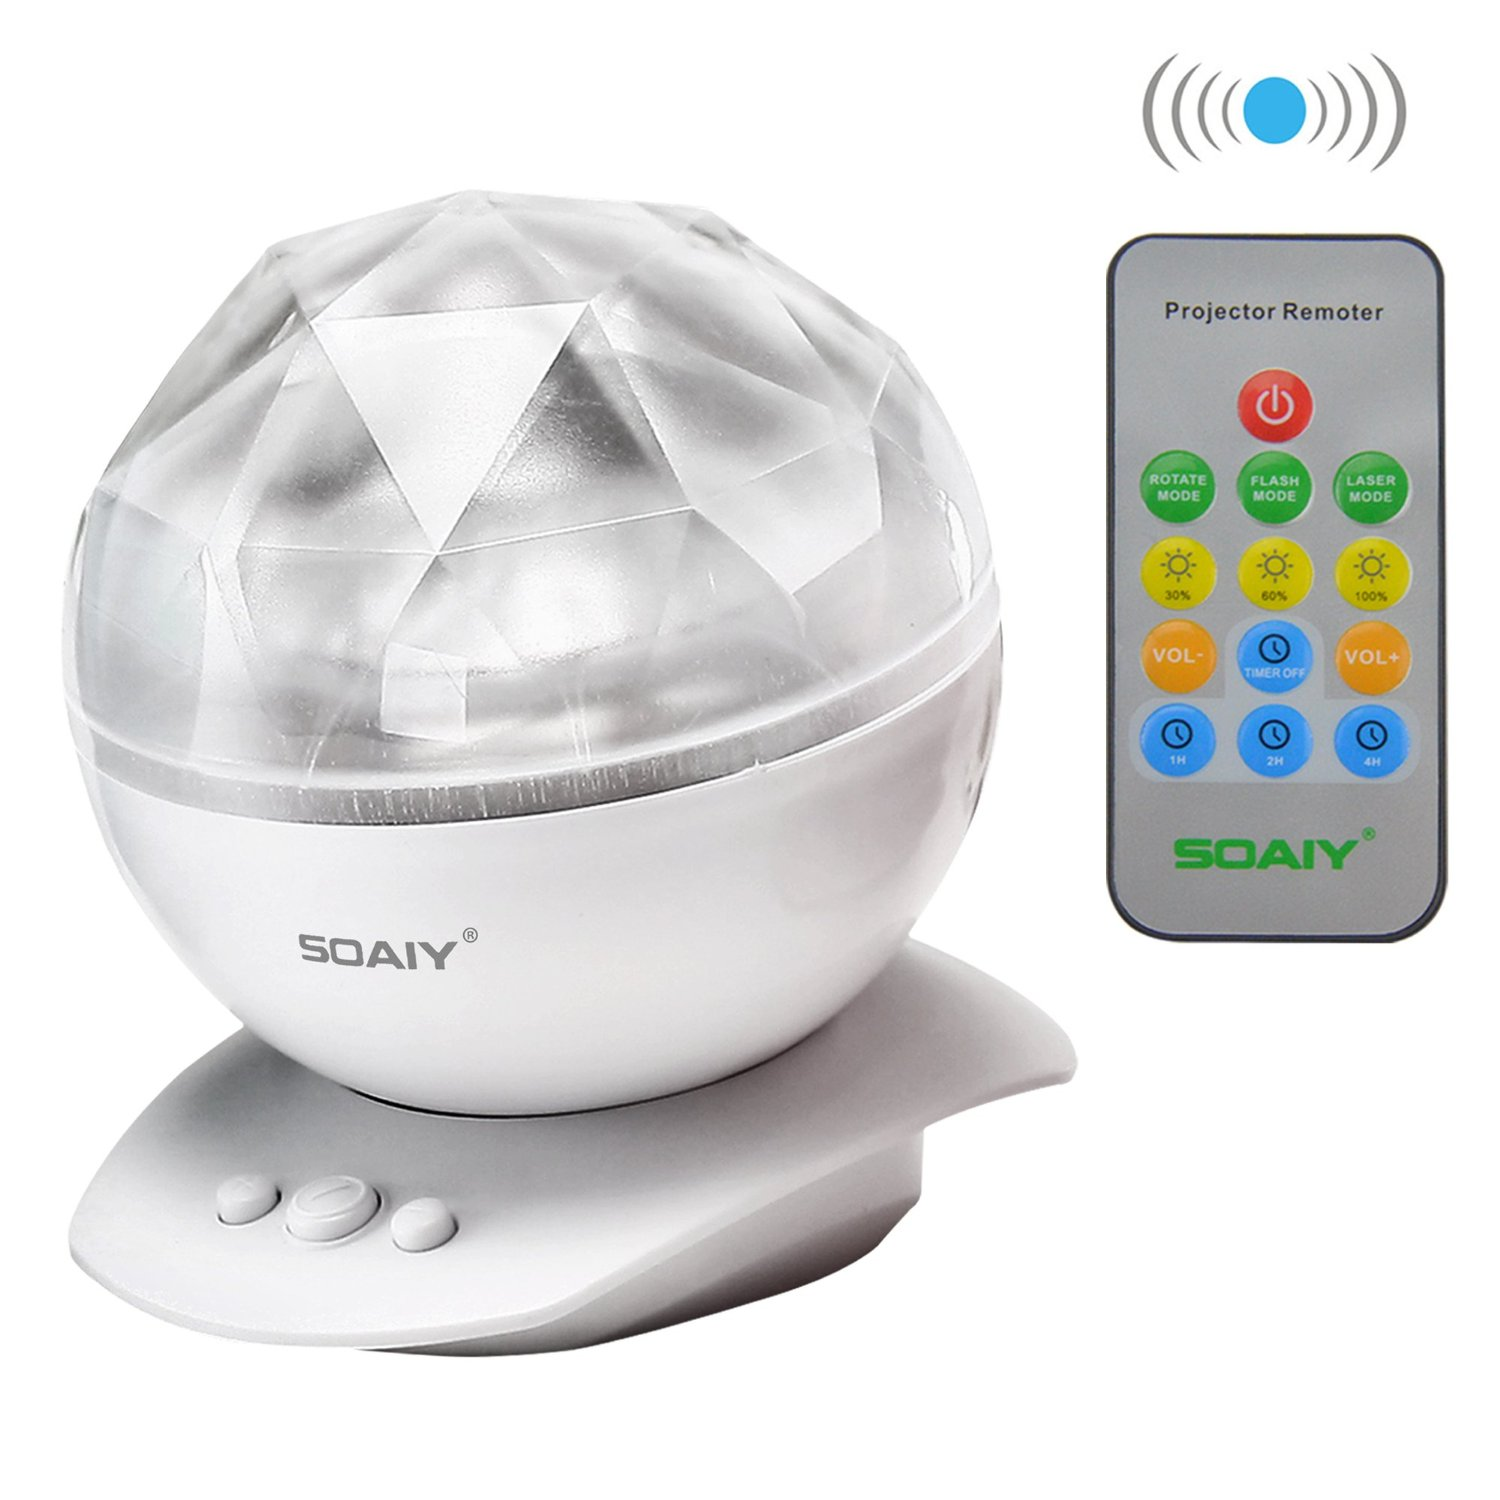 SOAIY LED Color Changing Aurora Master Wave Ocean Music Projector Lamp Night Light Soothing Relaxing USB Speaker with Remote, White, Thanksgiving Day Gift, Black Friday / Cyber Monday Deal